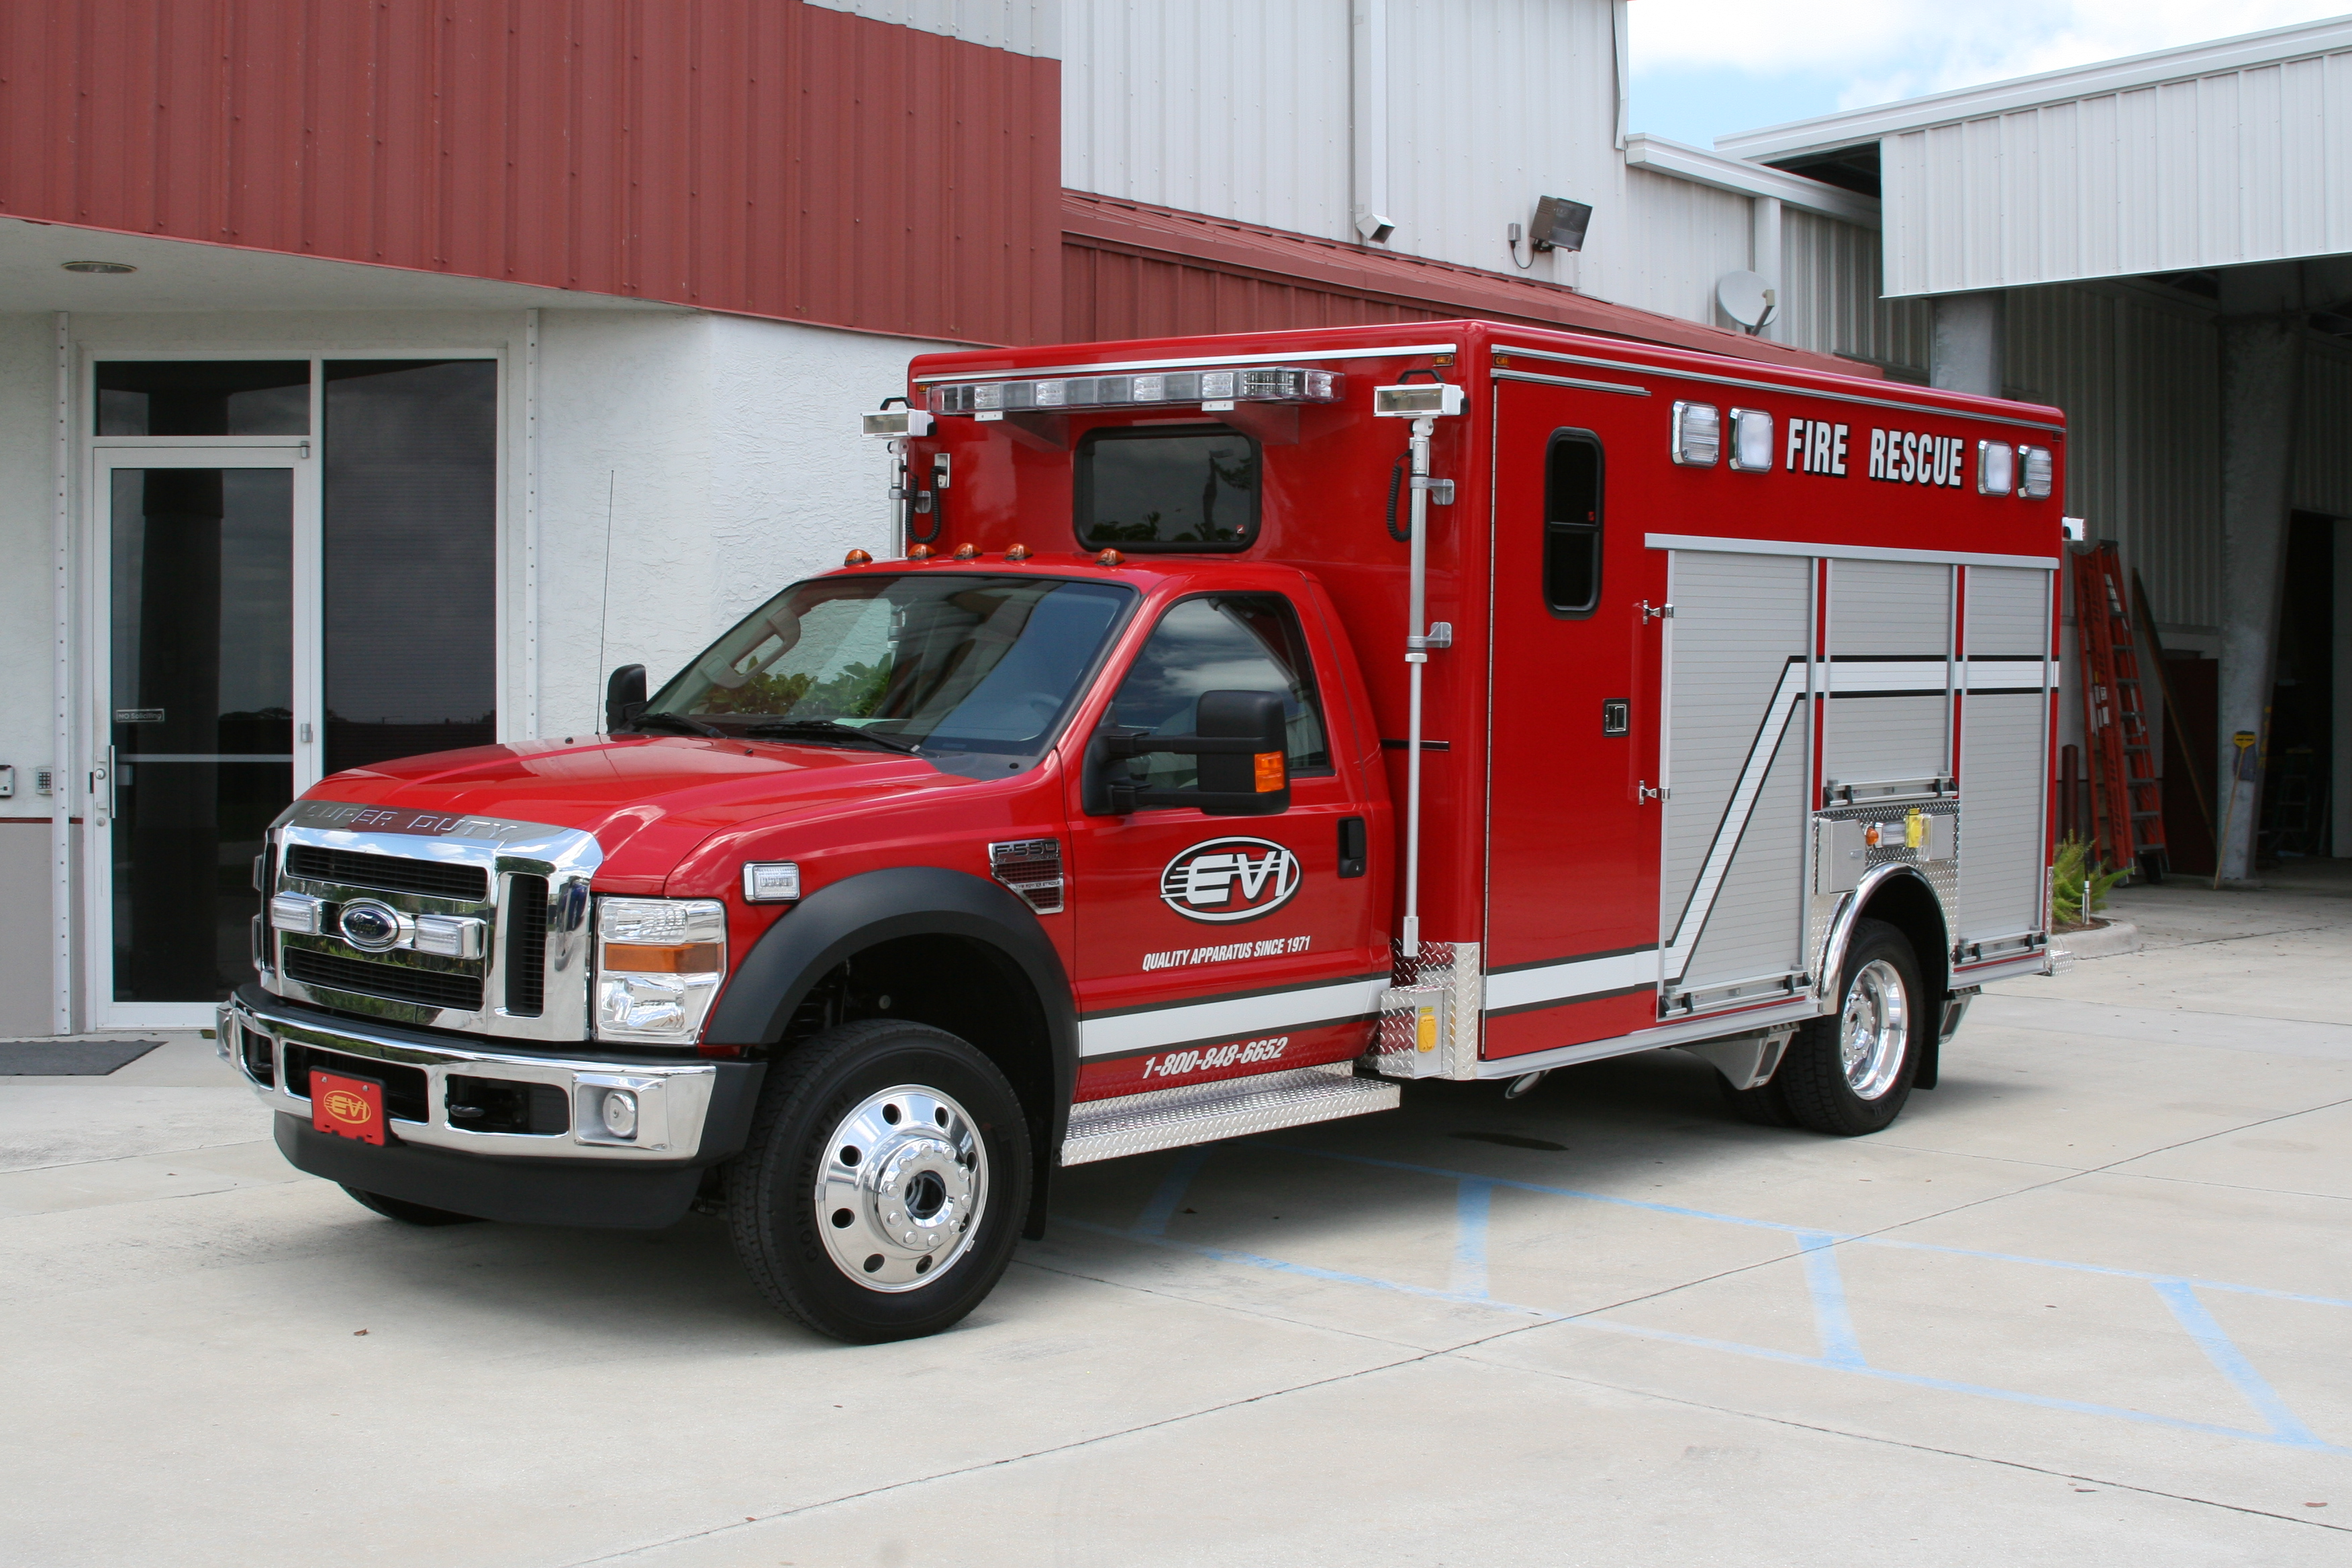 EVI 14-Ft. Crew Body Rescue Truck